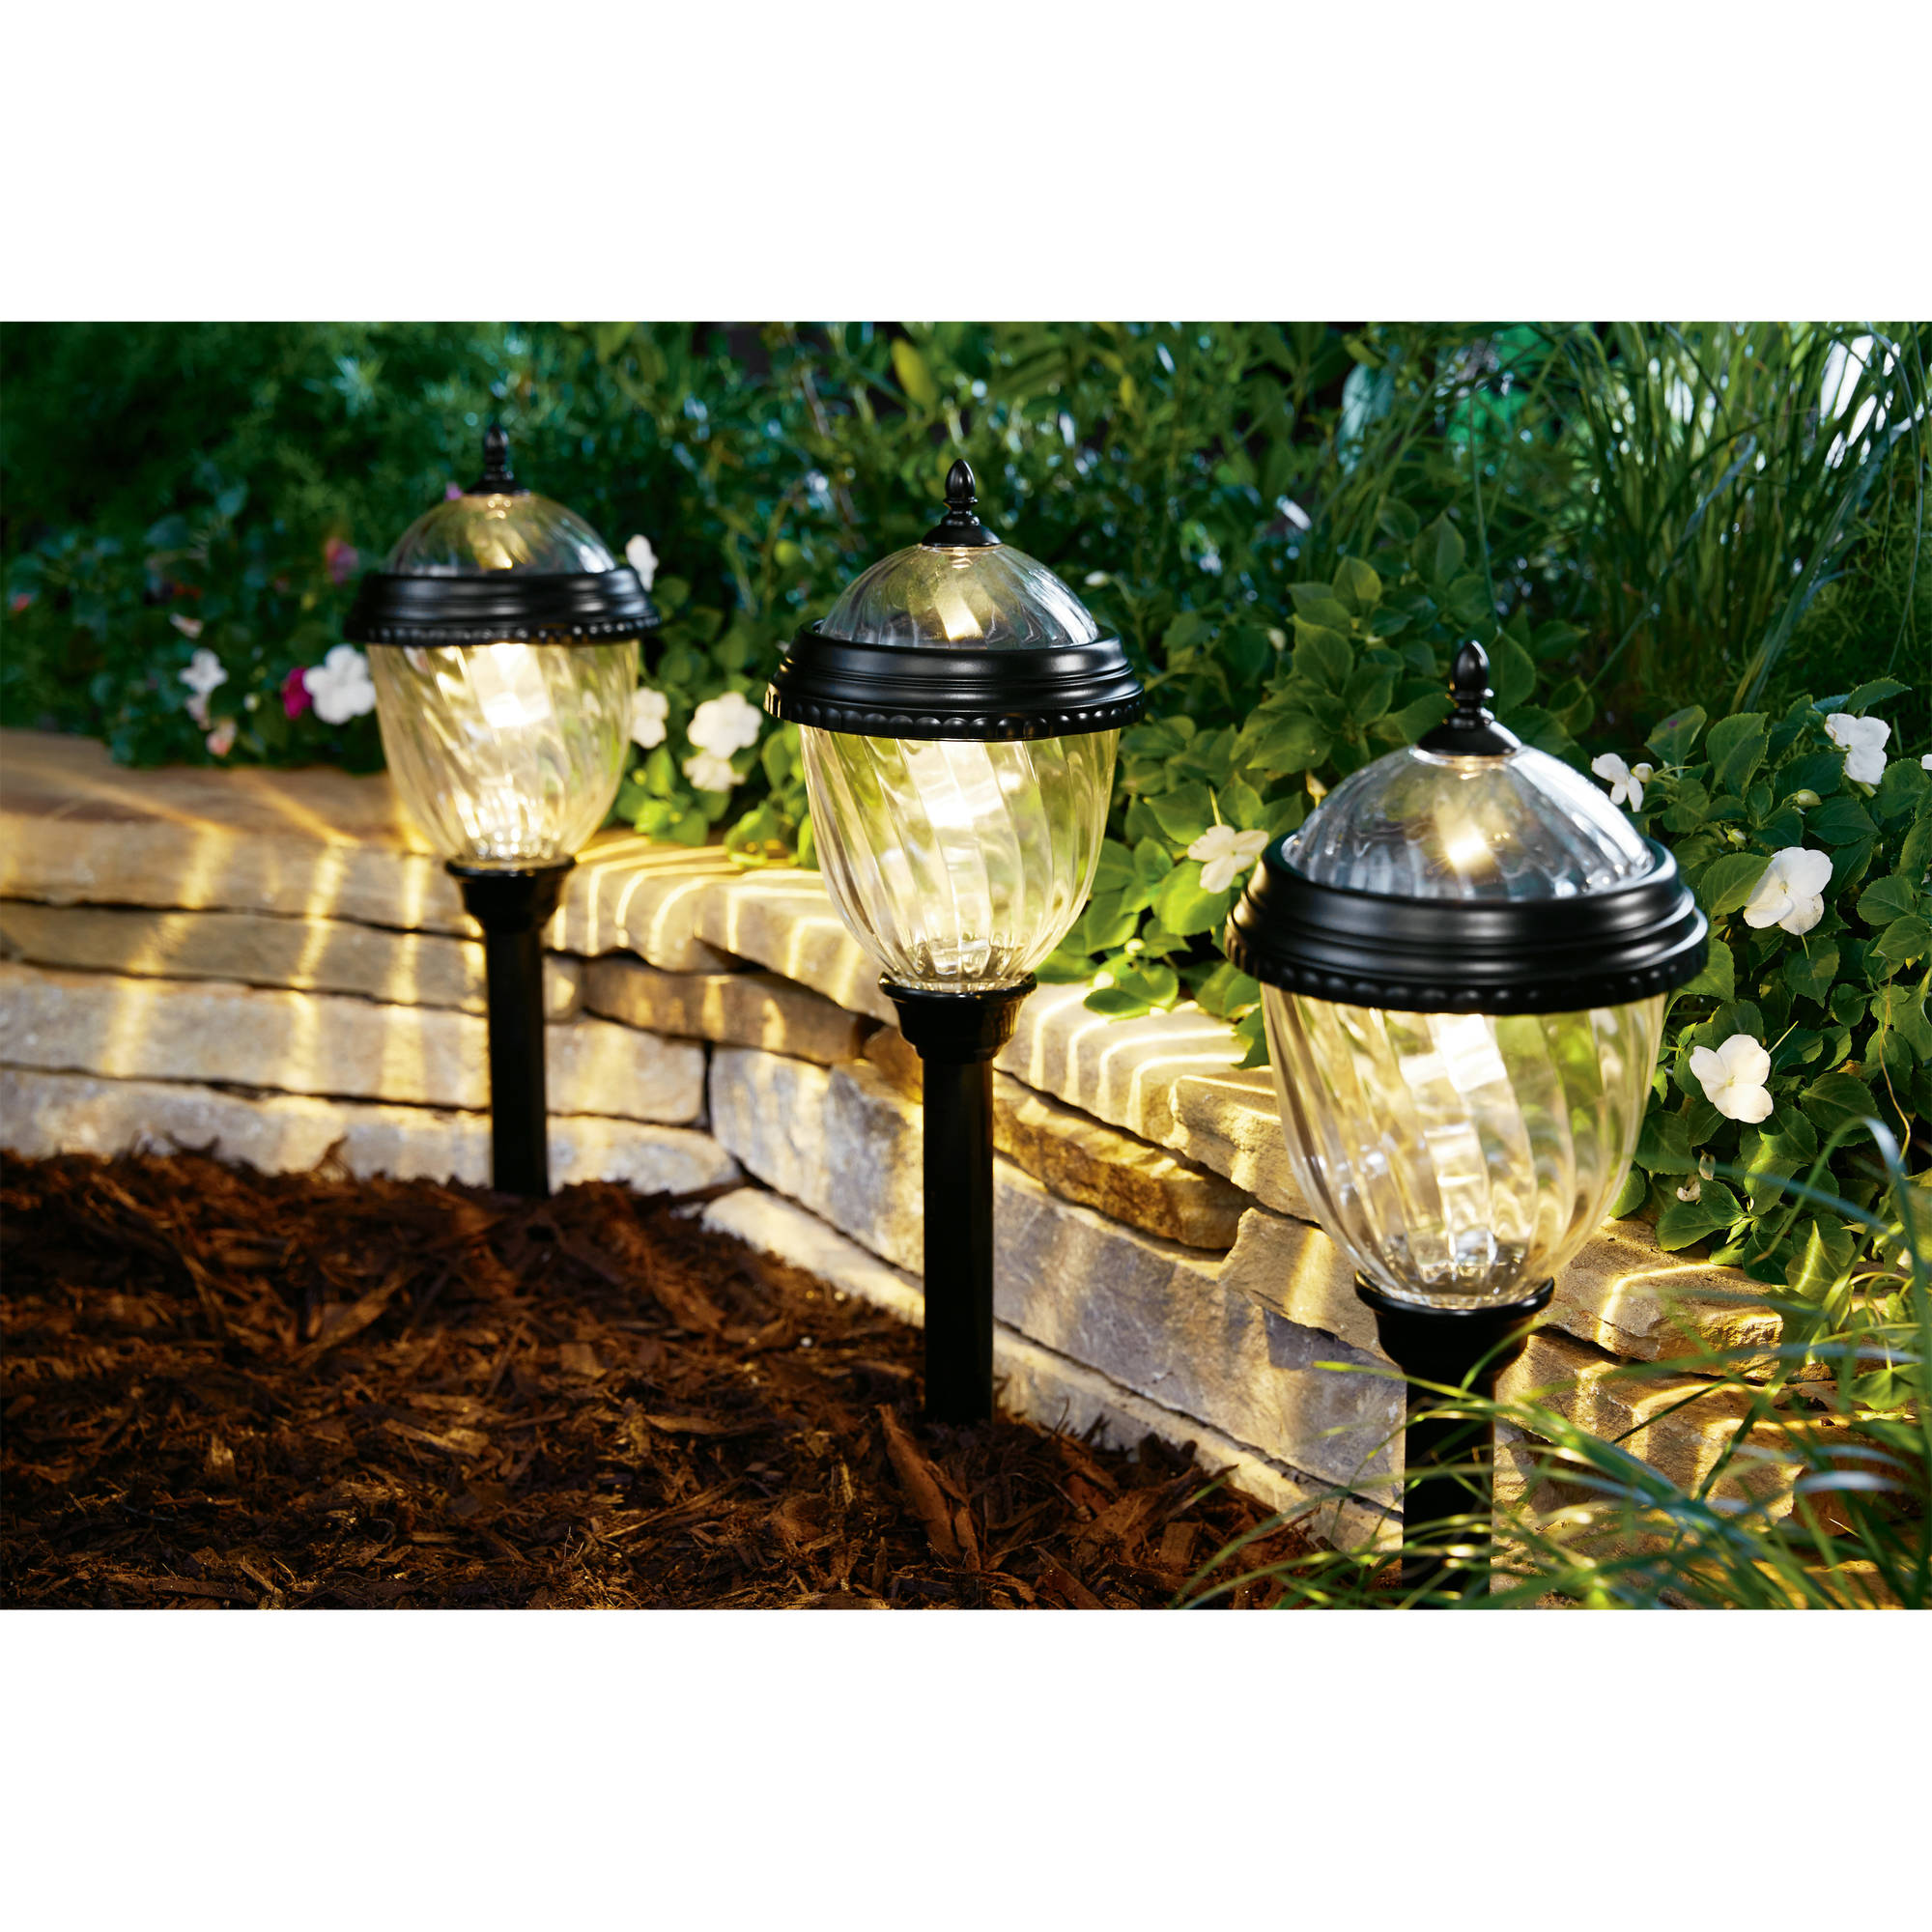 Better Homes and Gardens Castlewood Solar-Powered Landscape Light Set